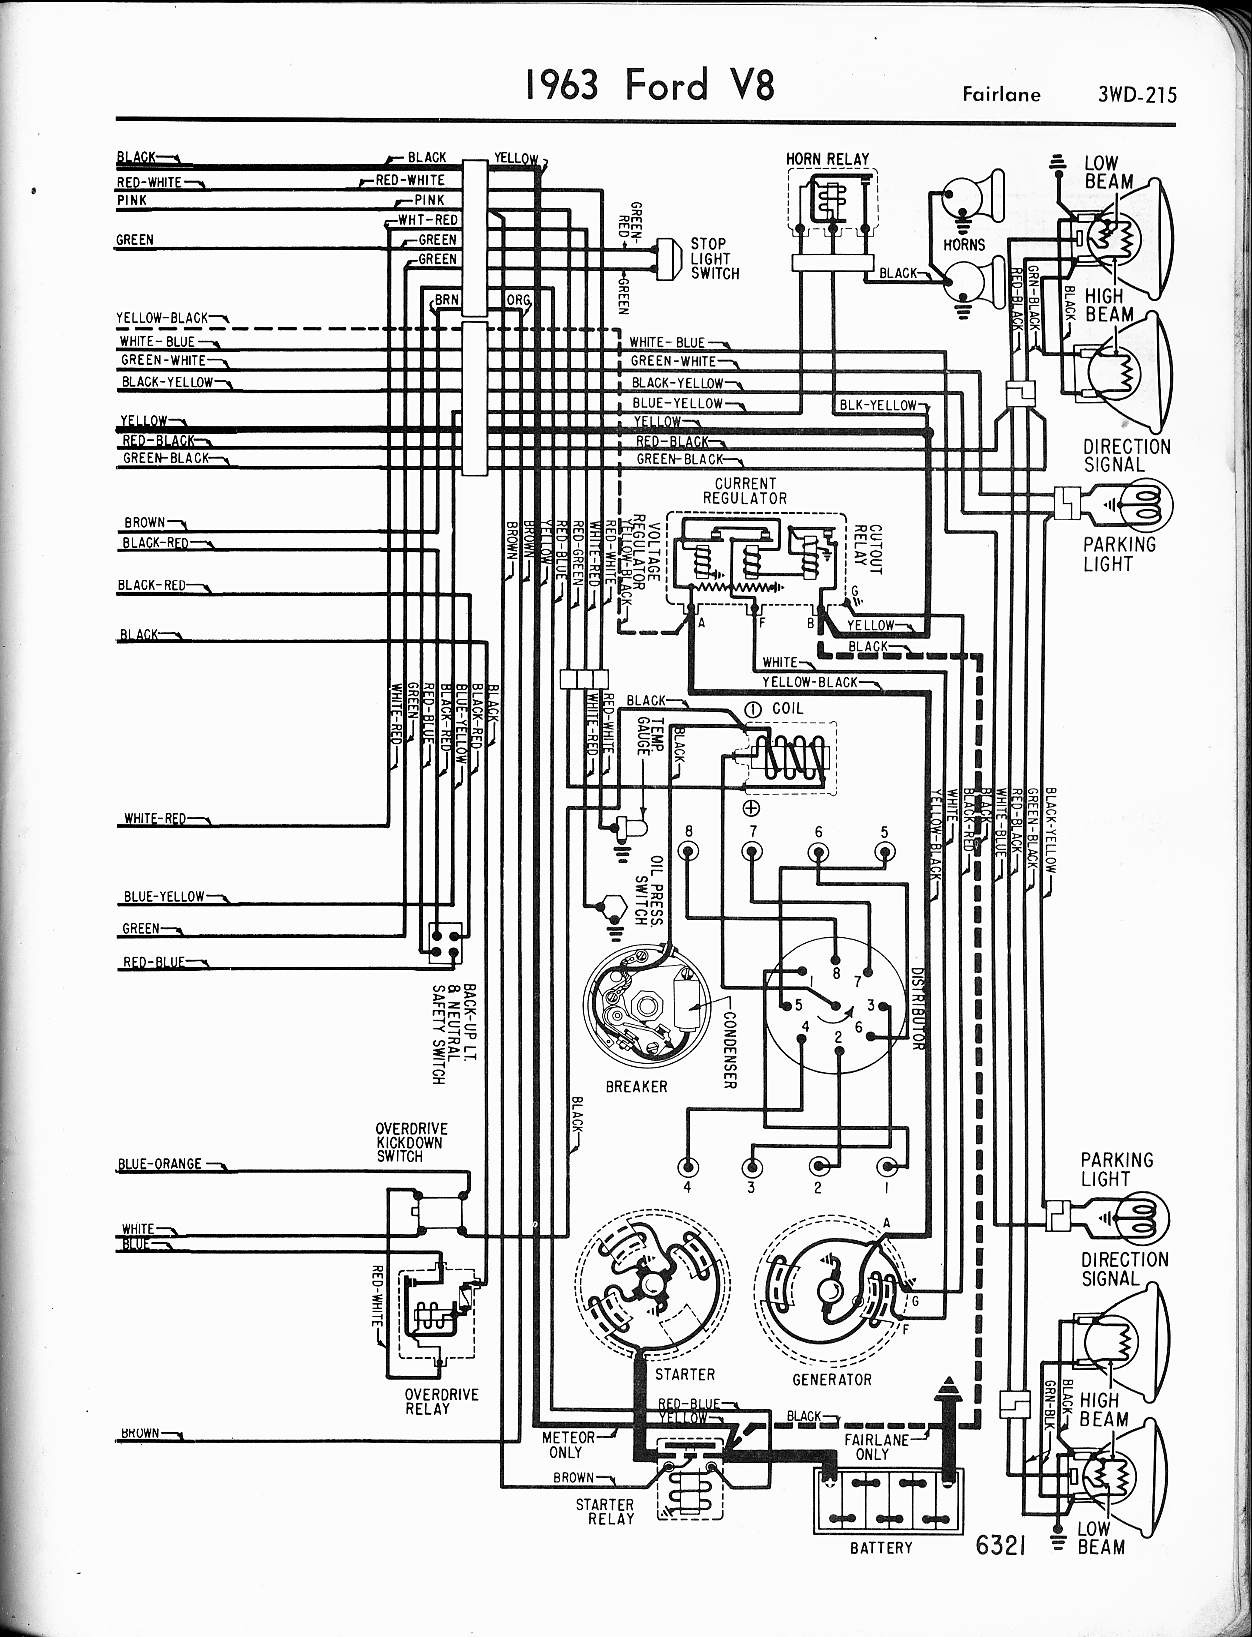 1963 ford f100 wiring diagram 1968 vw type 1 57 65 diagrams v8 fairlane right